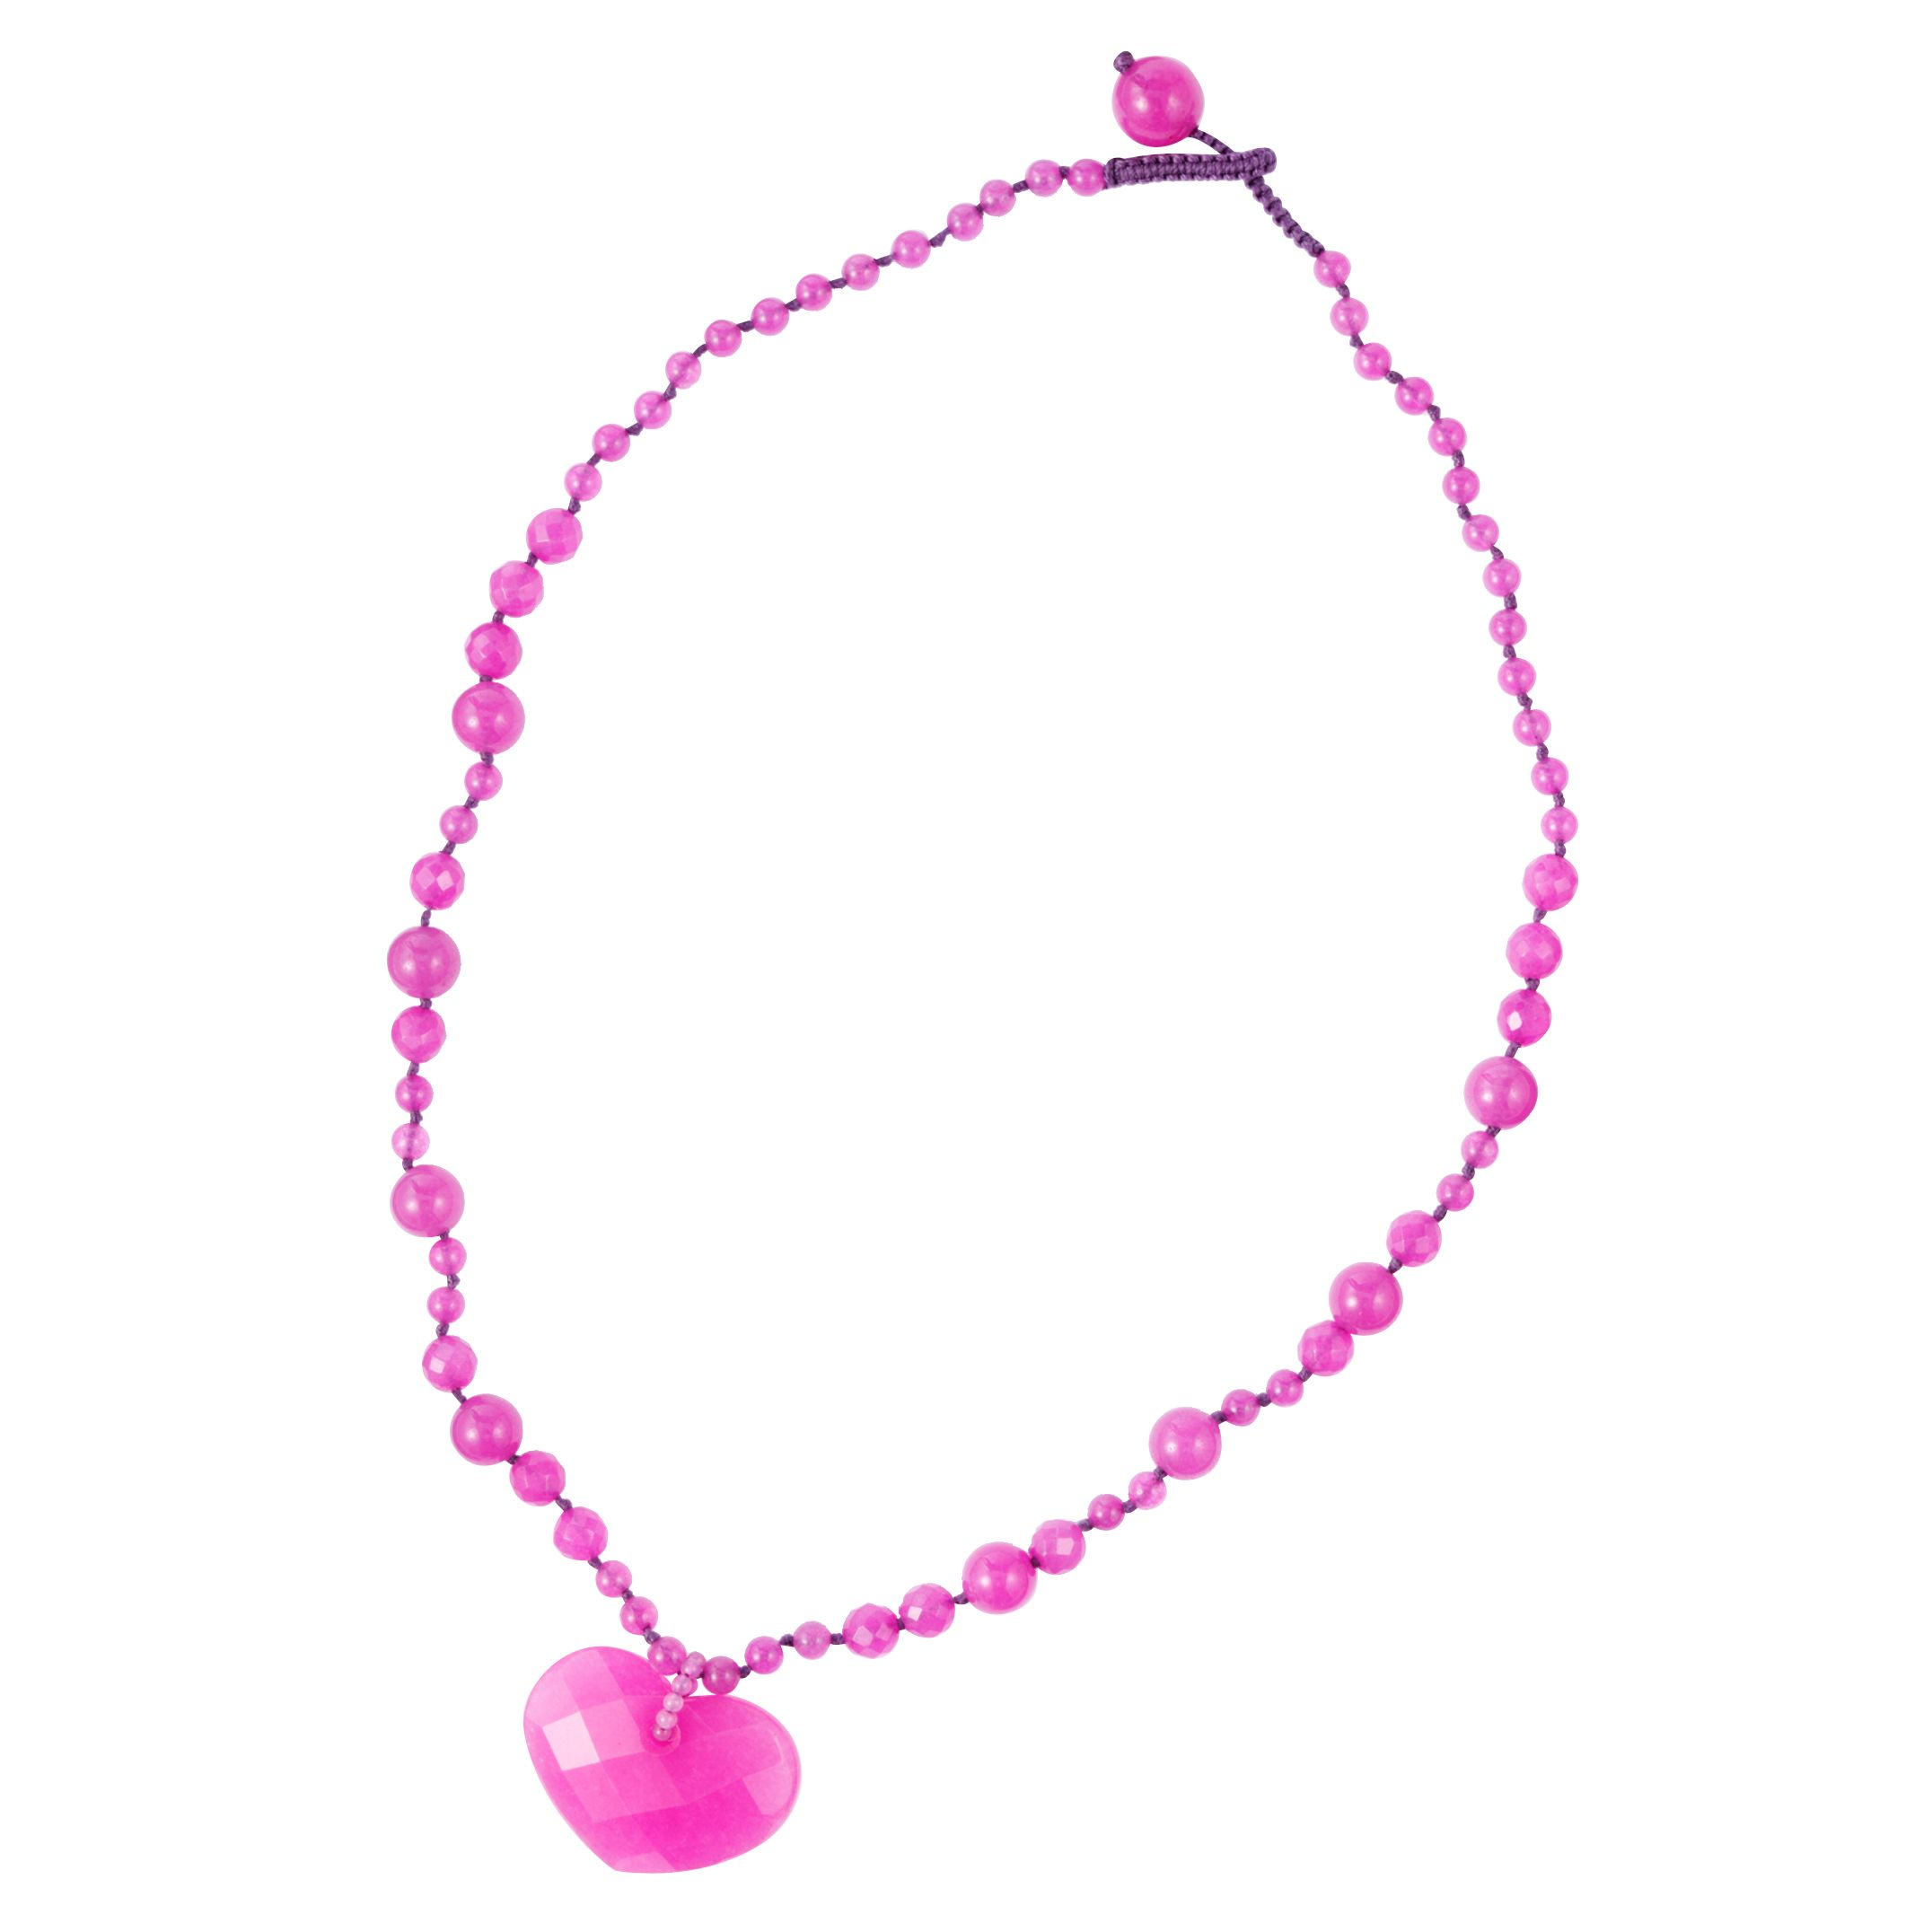 Lola Rose Small Faceted Heart Pendant Necklace, Pink